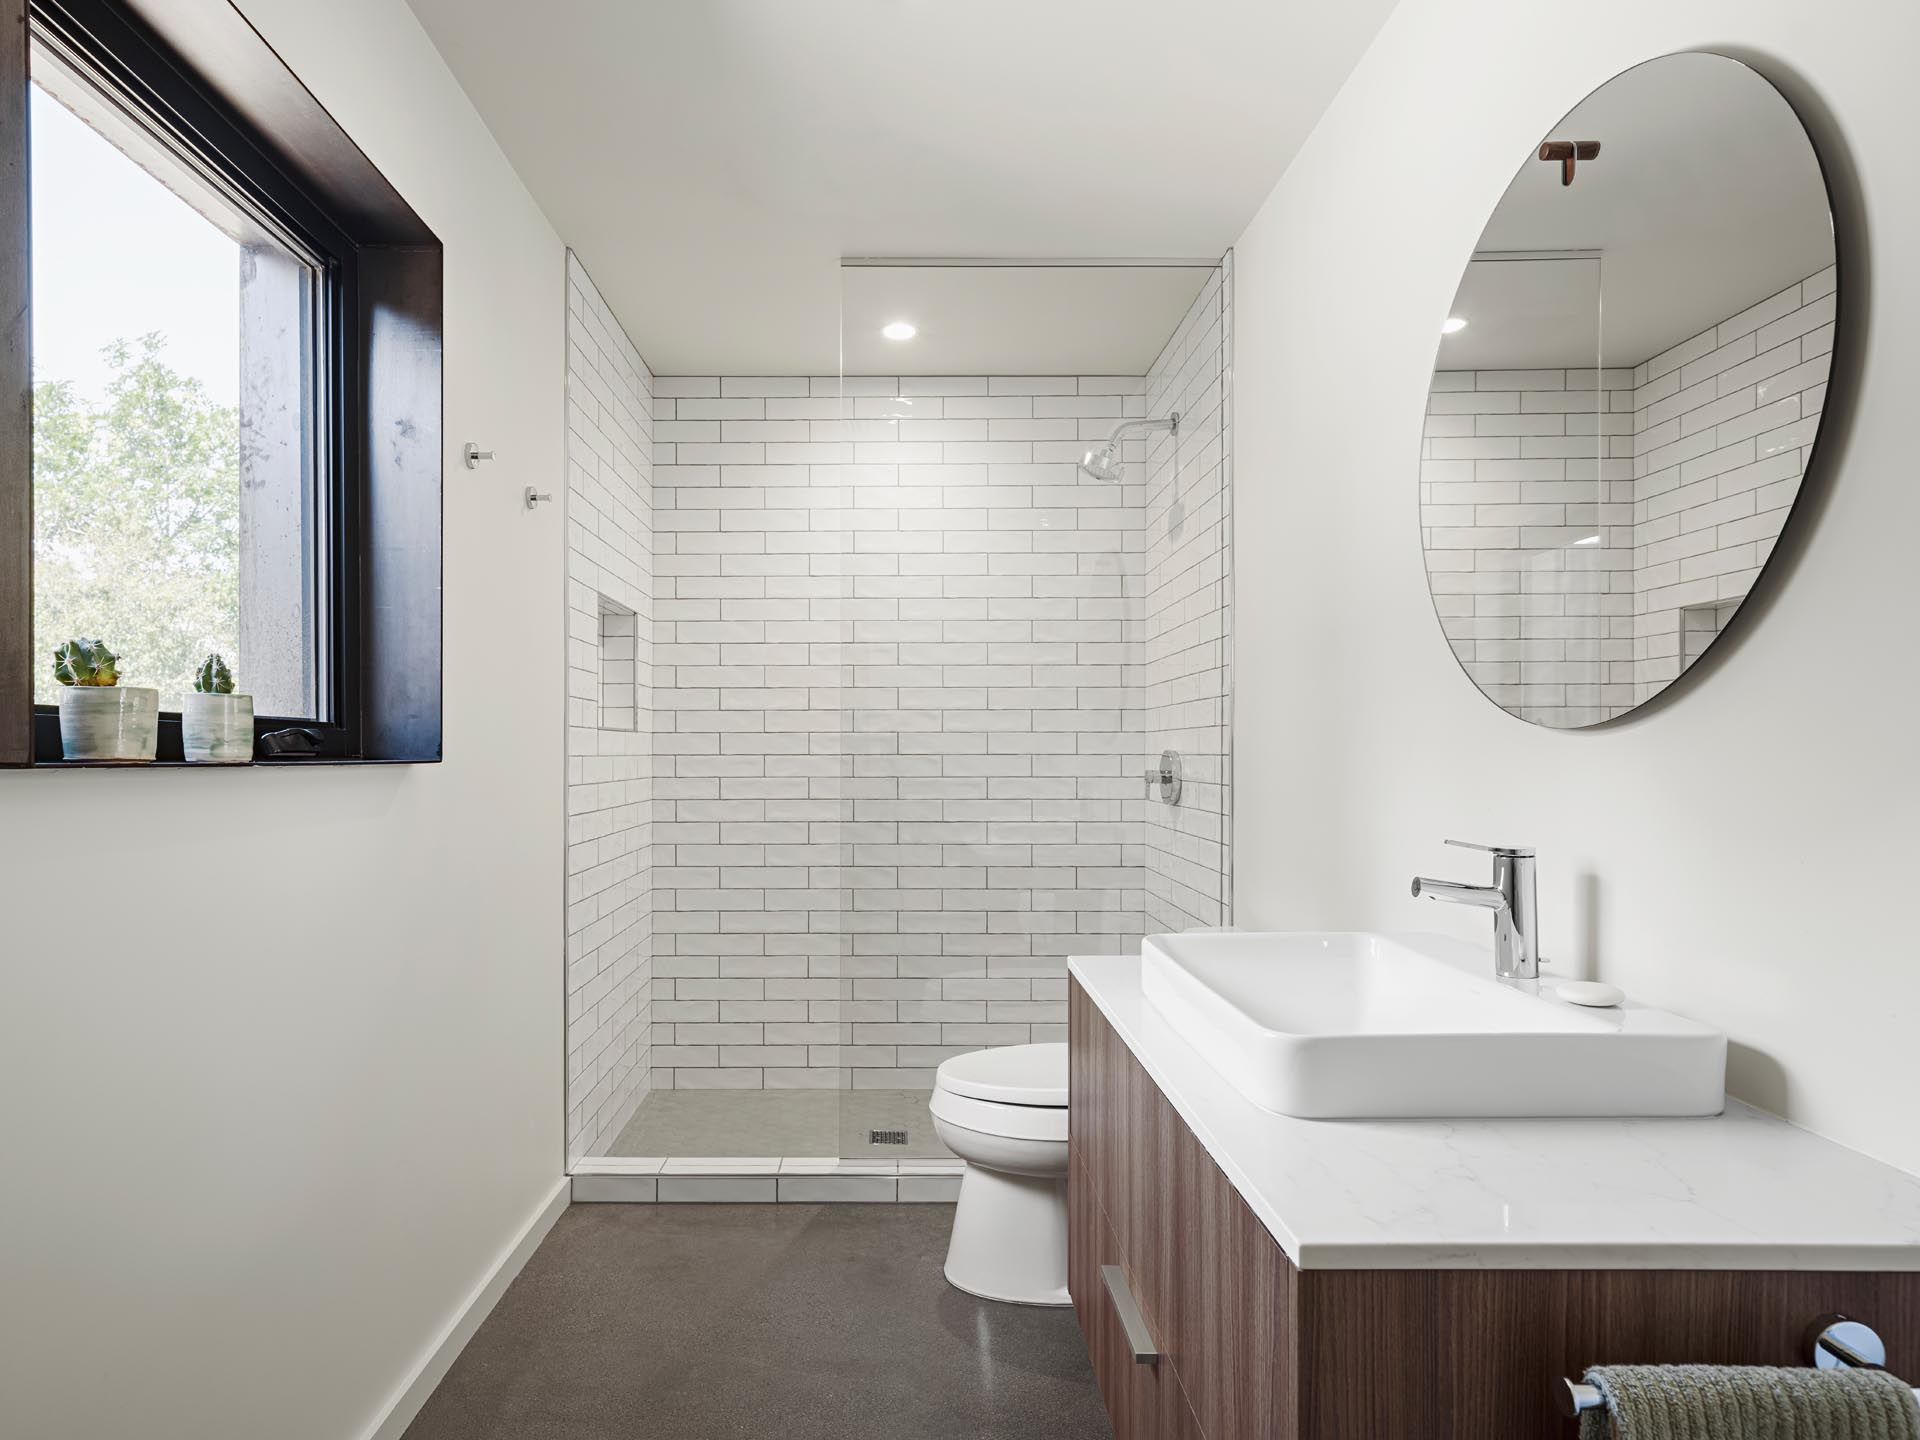 A modern white bathroom with a wood vanity and white rectangular tiles.